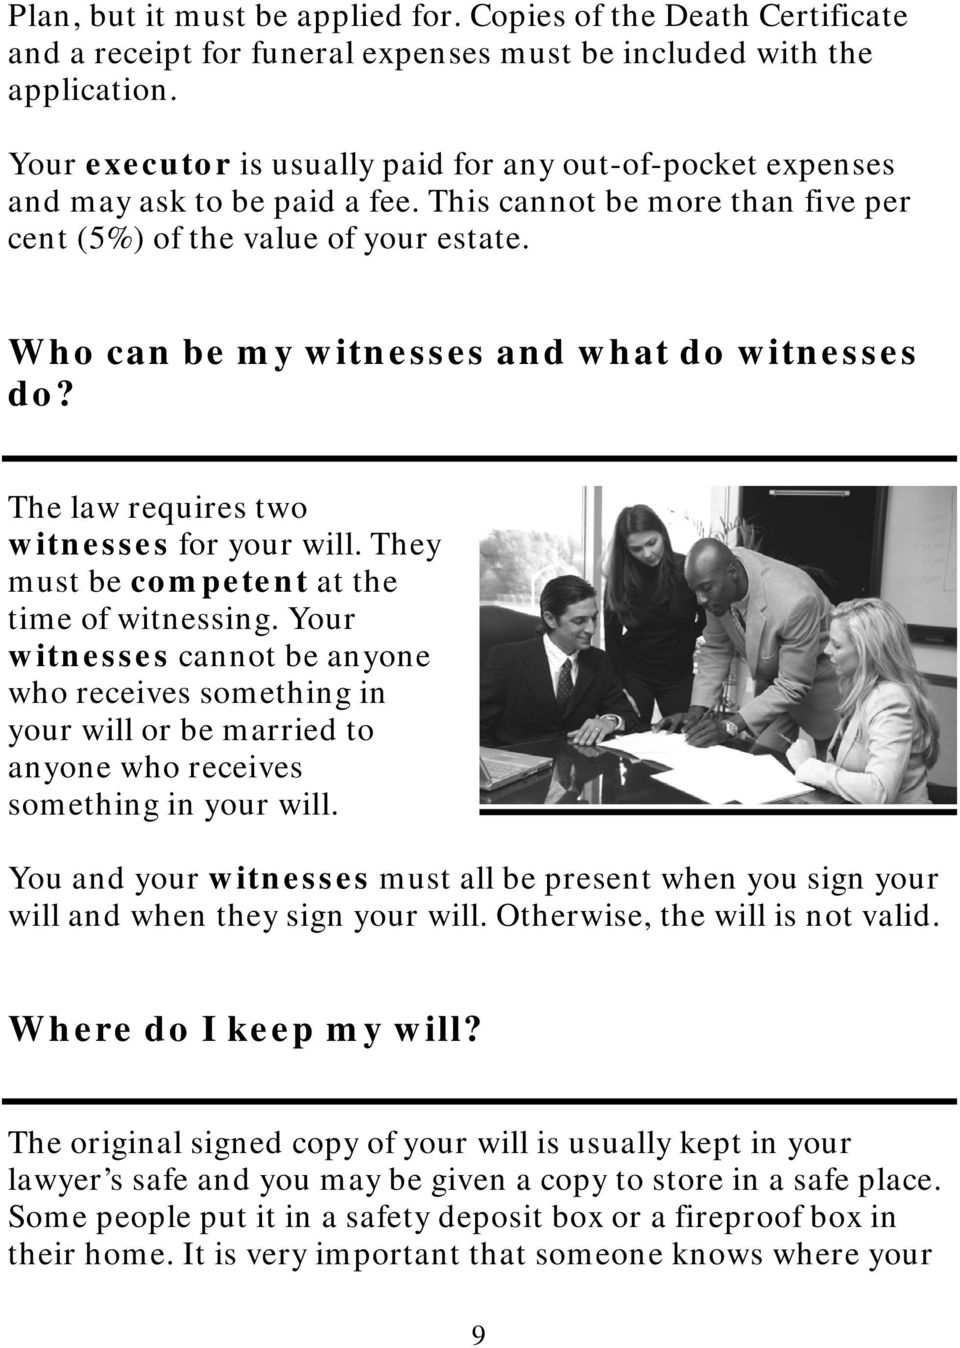 Who can be my witnesses and what do witnesses do? The law requires two witnesses for your will. They must be competent at the time of witnessing.